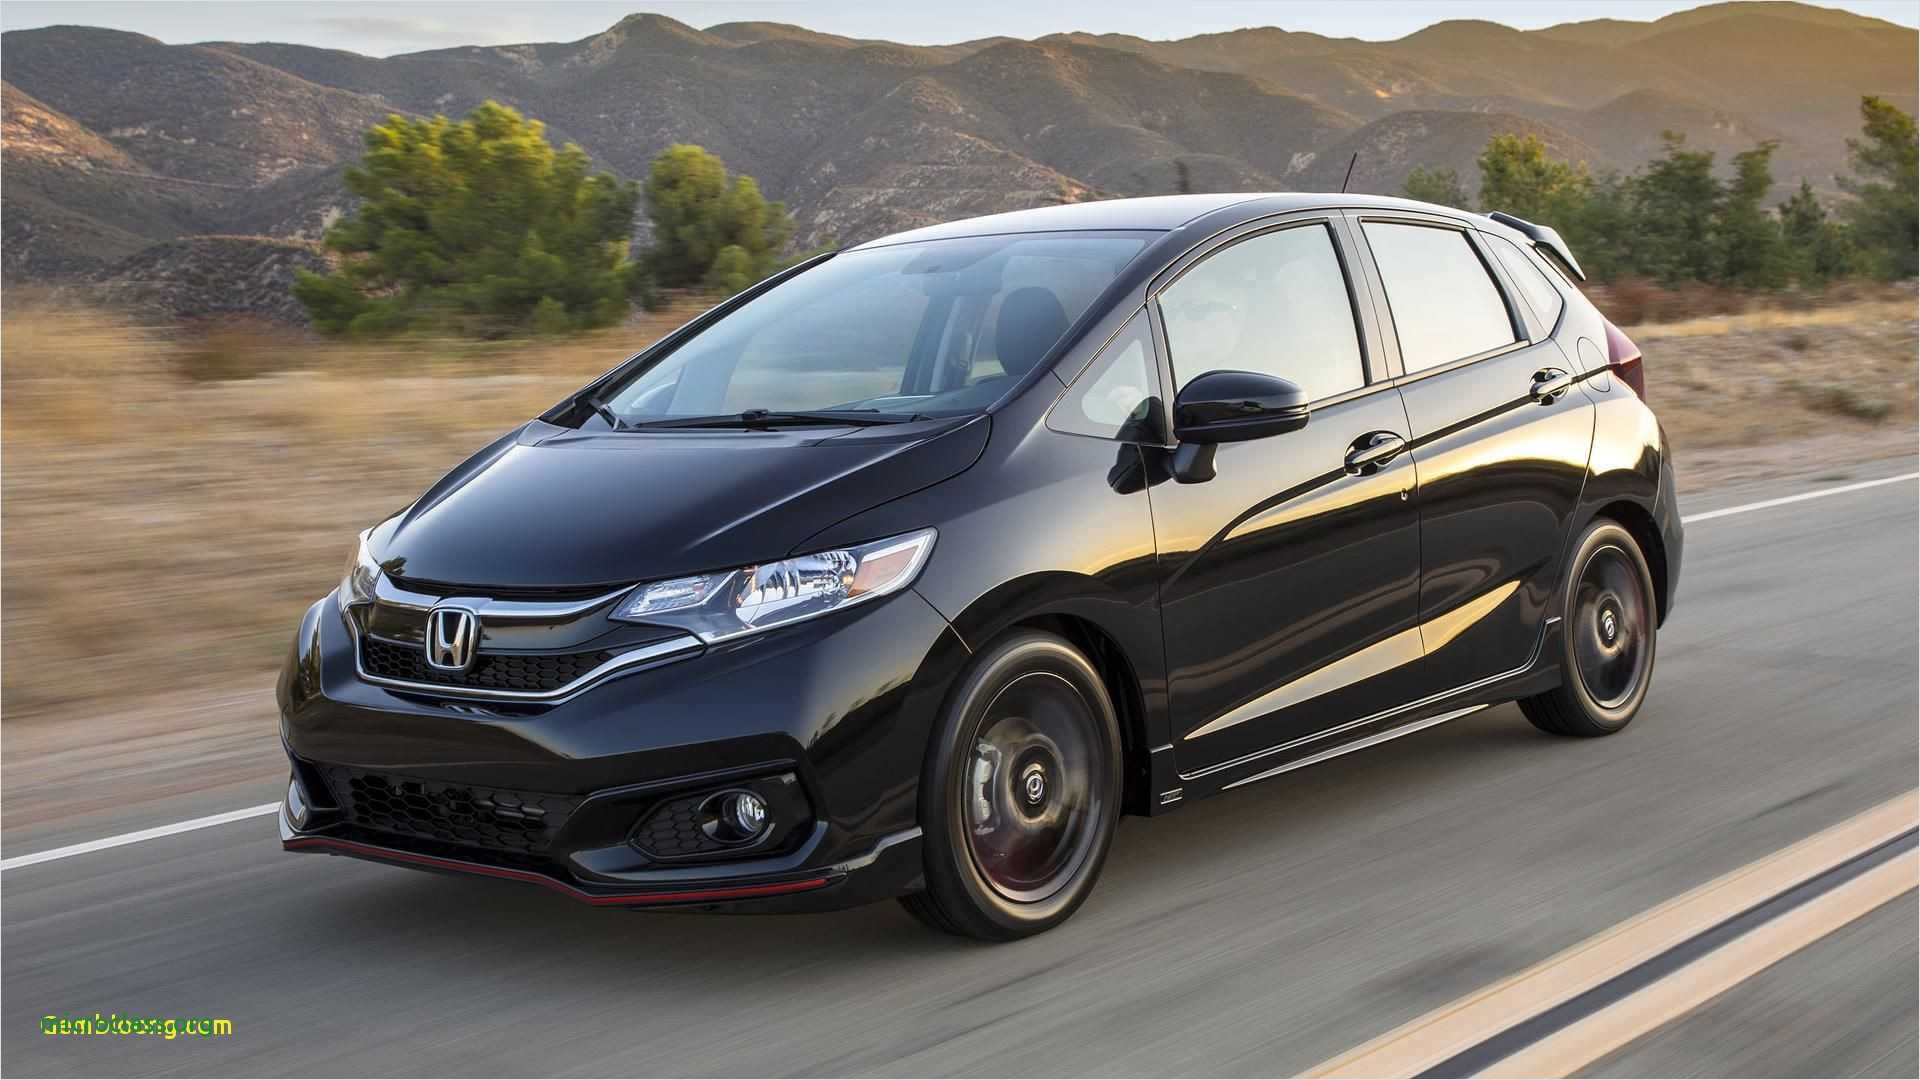 cool review about honda fit pictures with extraordinary images